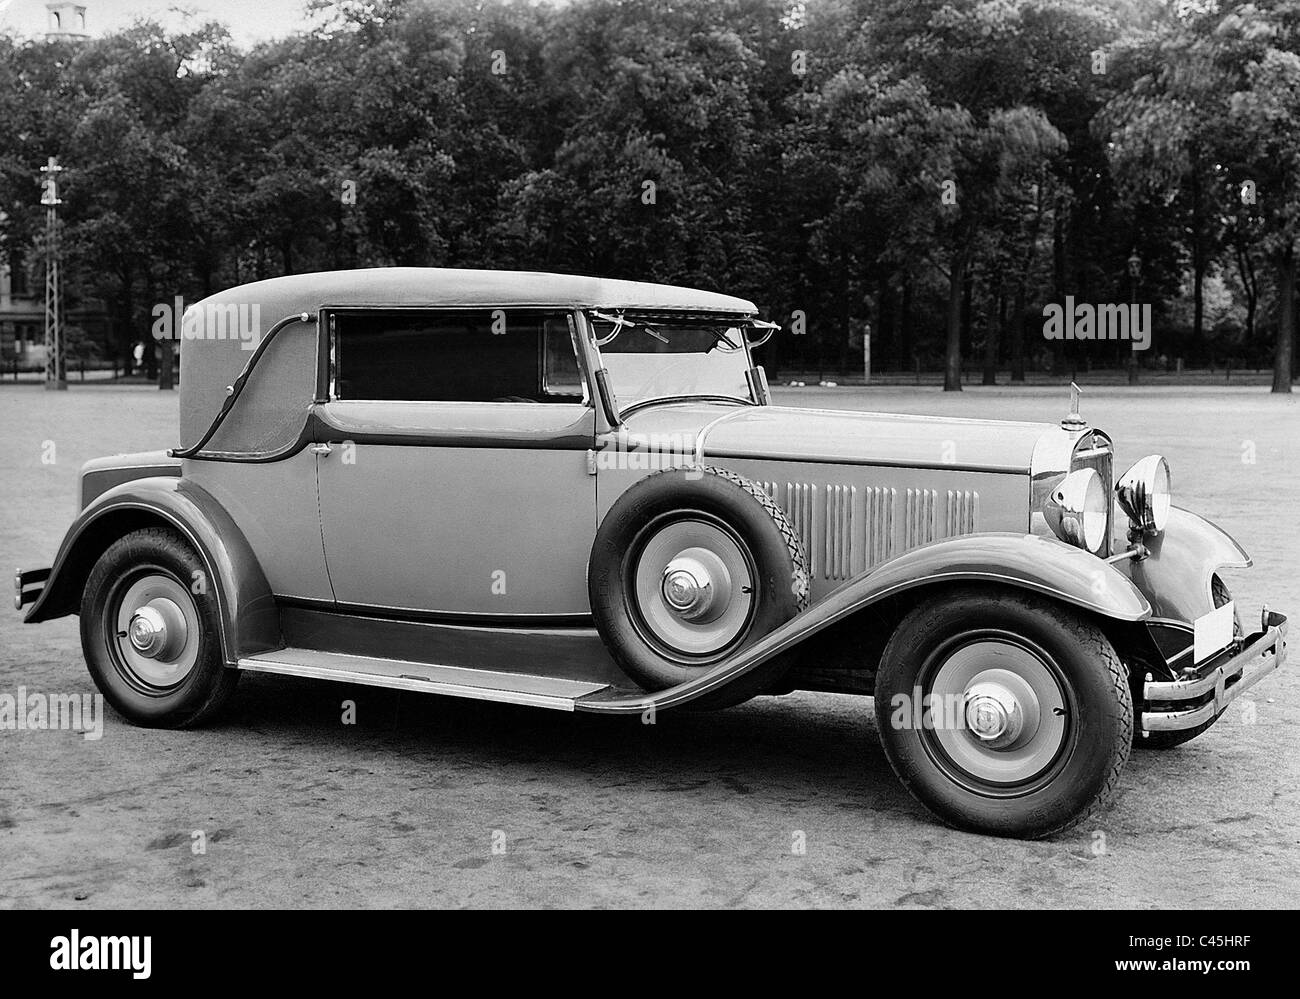 Horch model 'Zwickau', 1931 - Stock Image